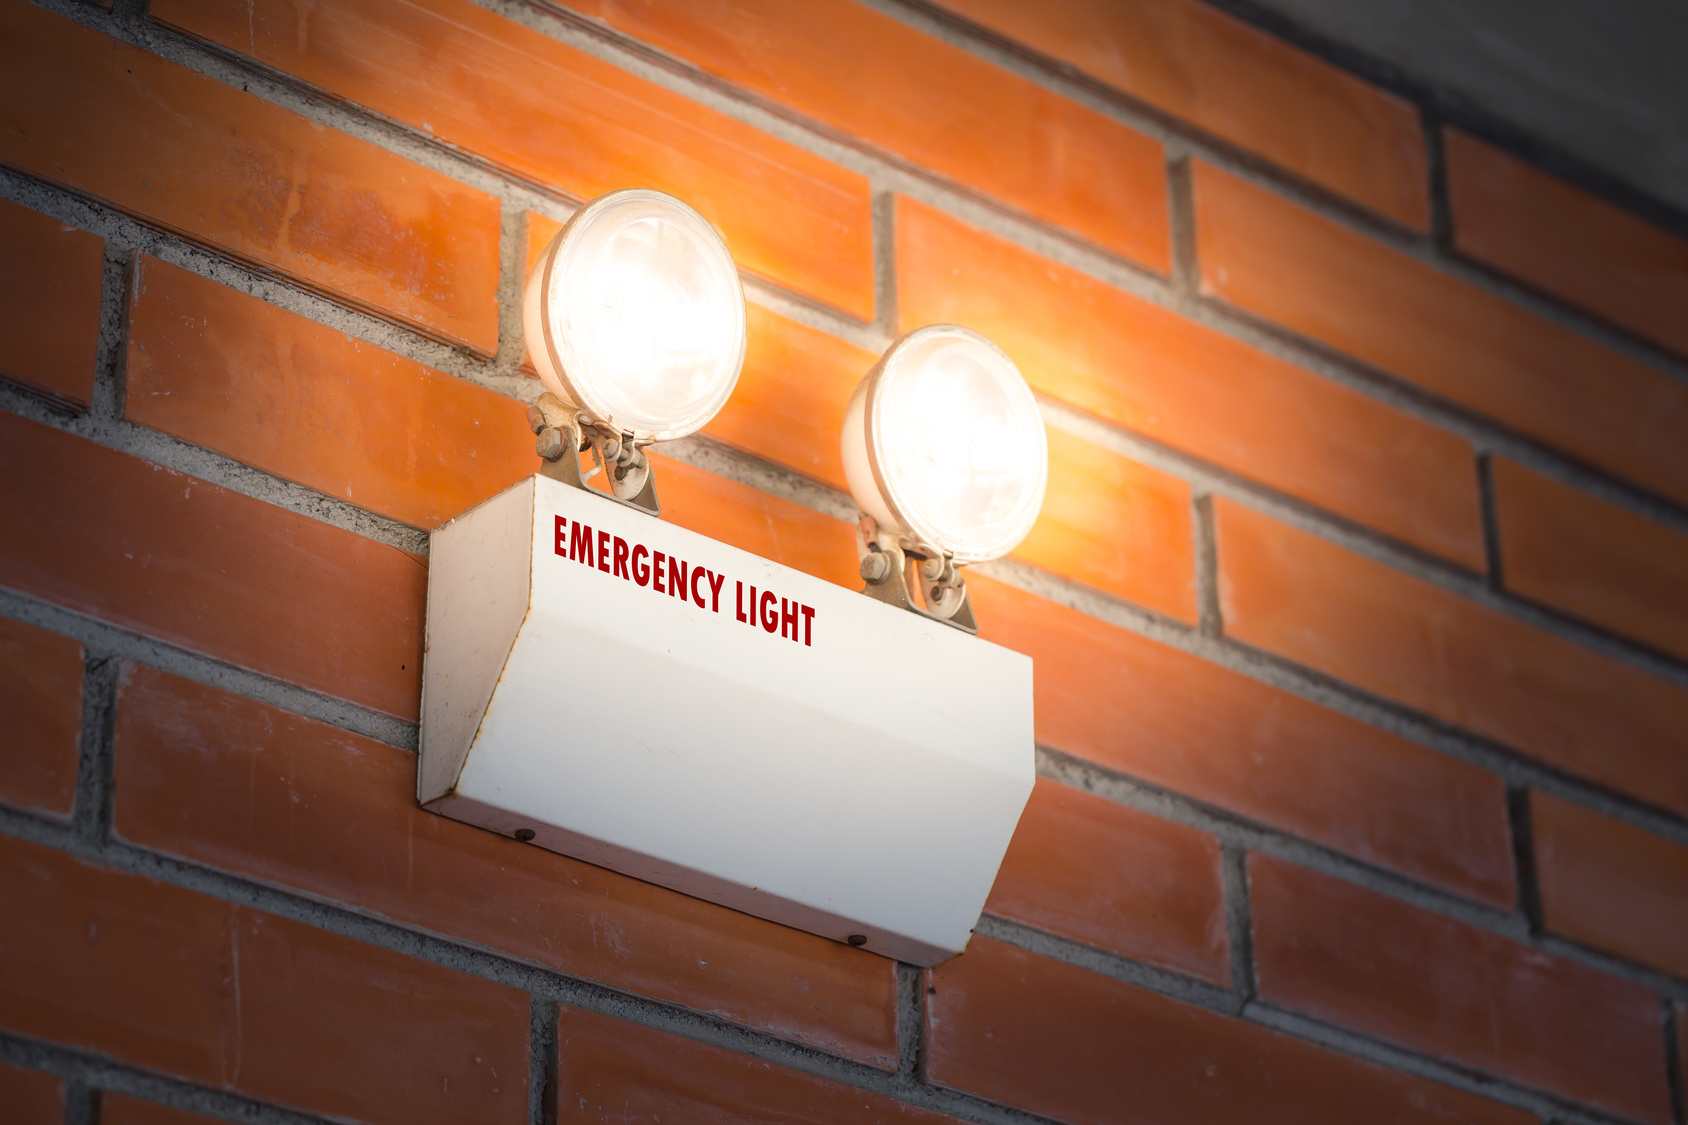 An emergency light warns that the power is out.